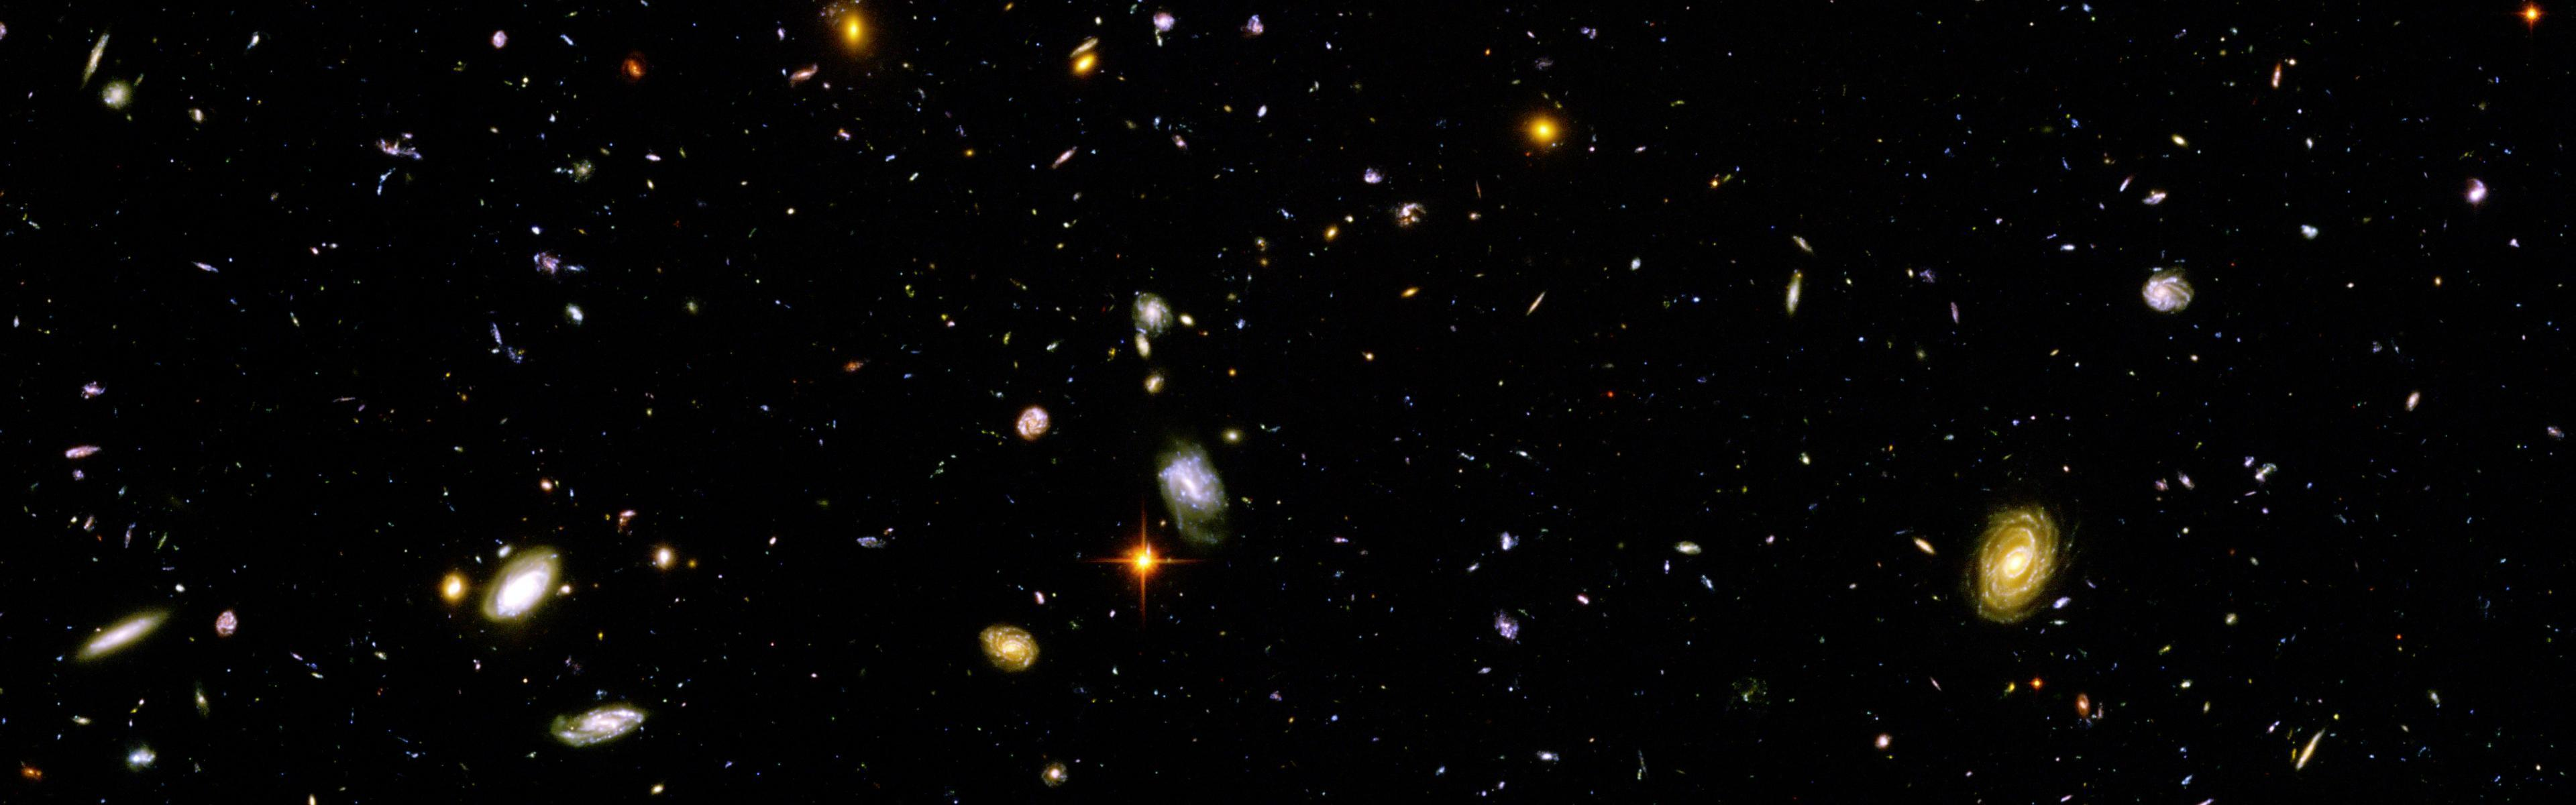 hubble deep field hd wallpaper - photo #19